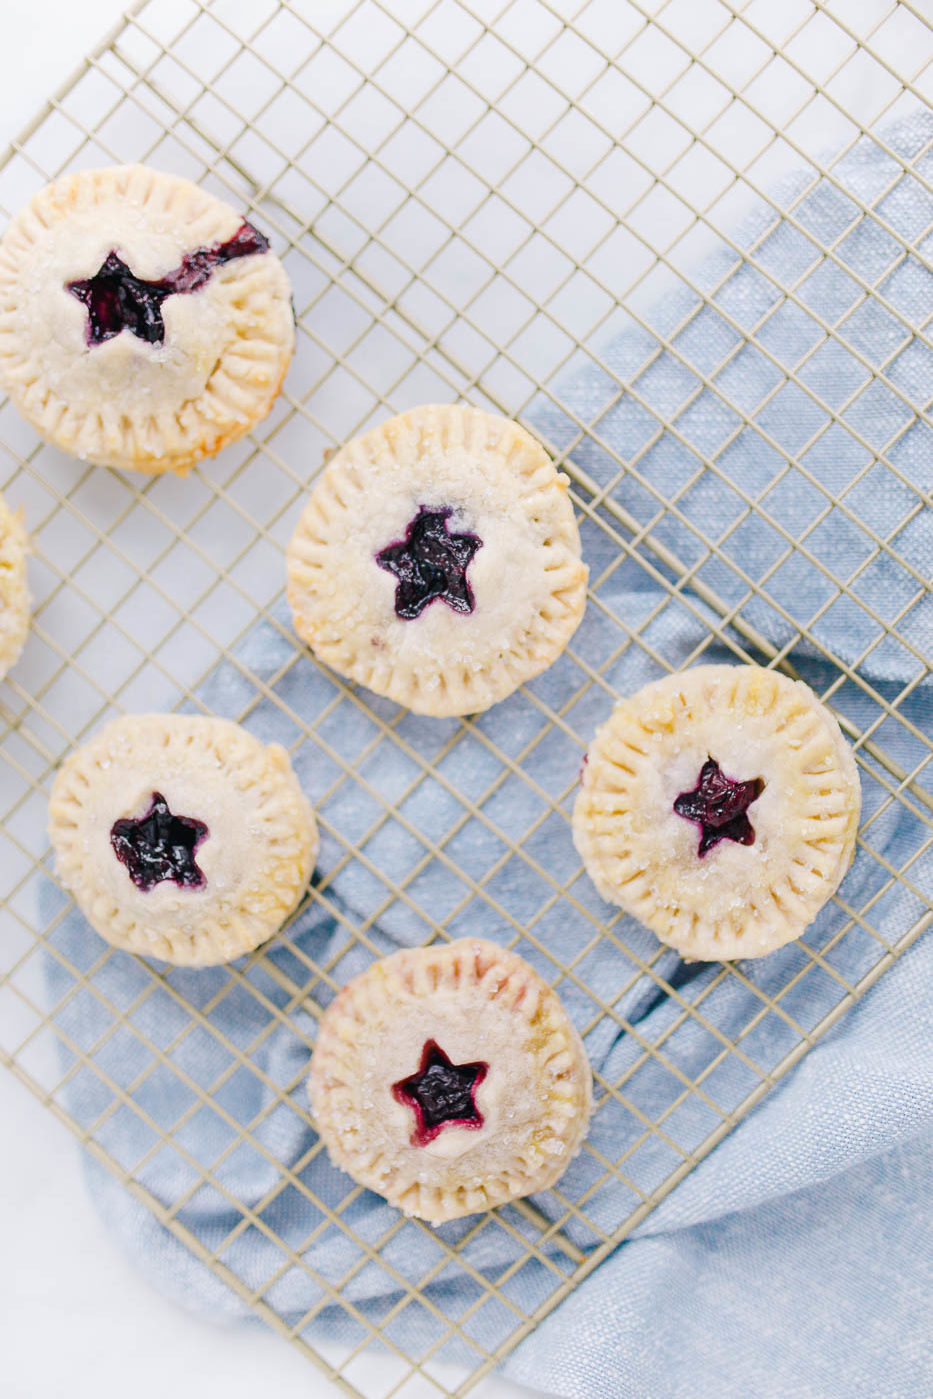 A simple and delicious homemade cherry and blueberry hand pie recipe by Lauren Cermak of Going For Grace. This recipe is the perfect addition to any meal!